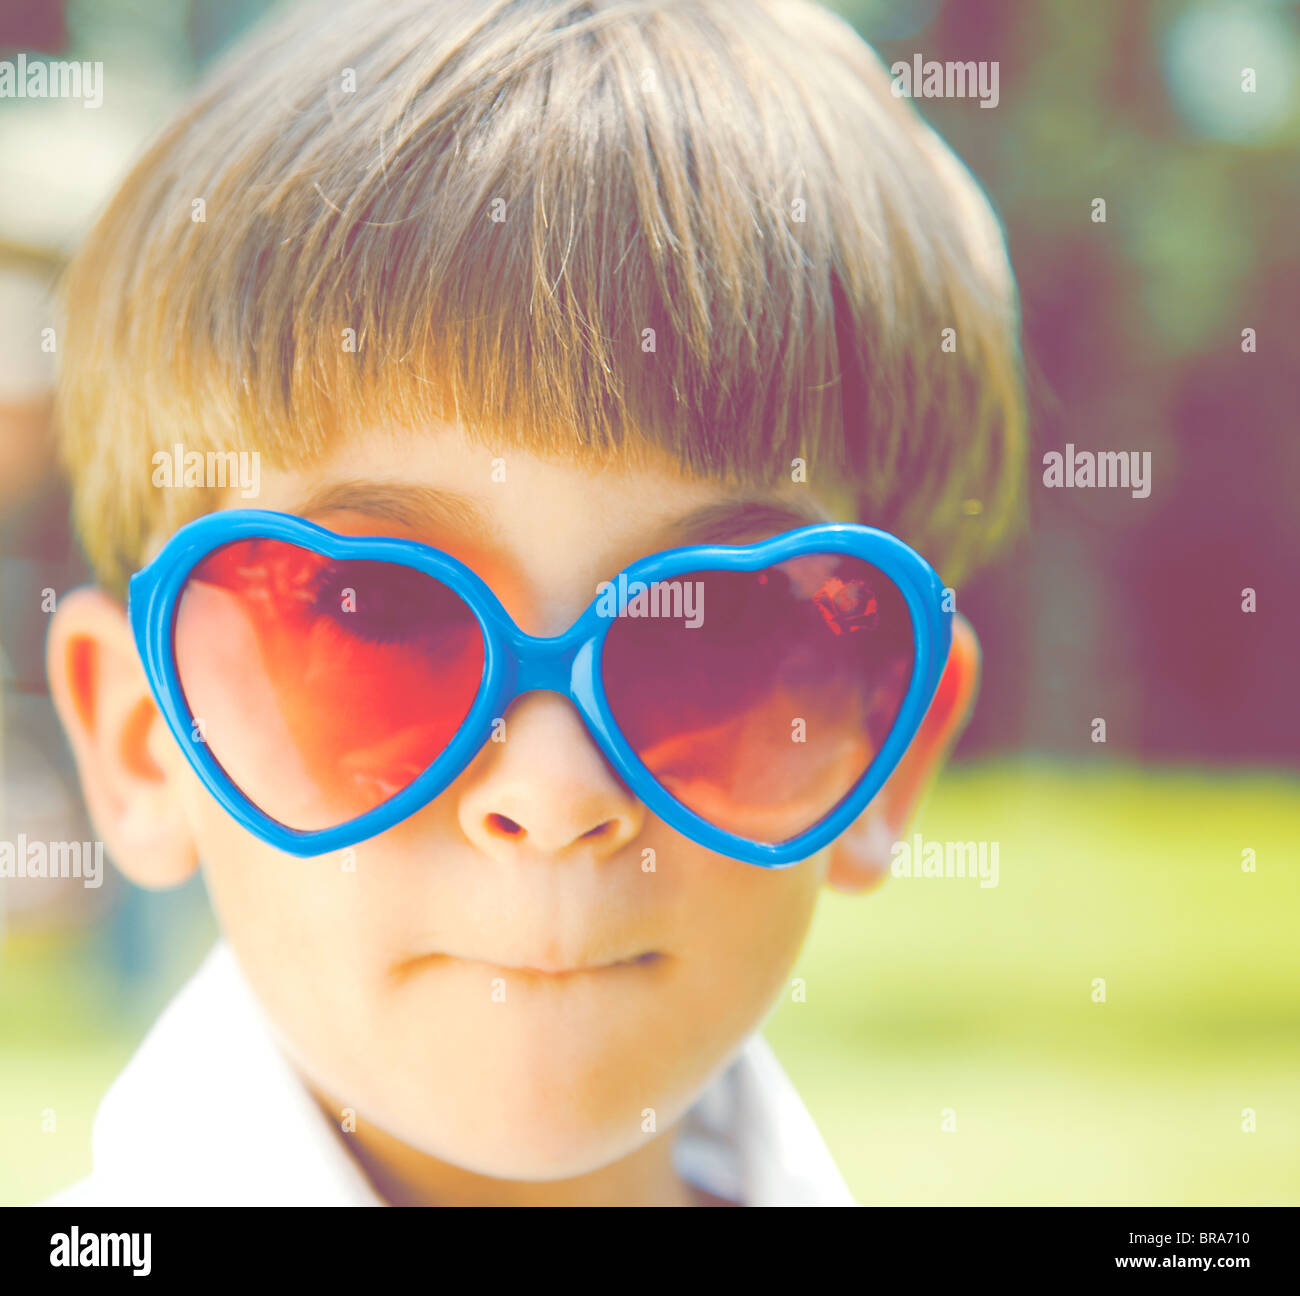 Young boy in heart shaped sunglasses - Stock Image